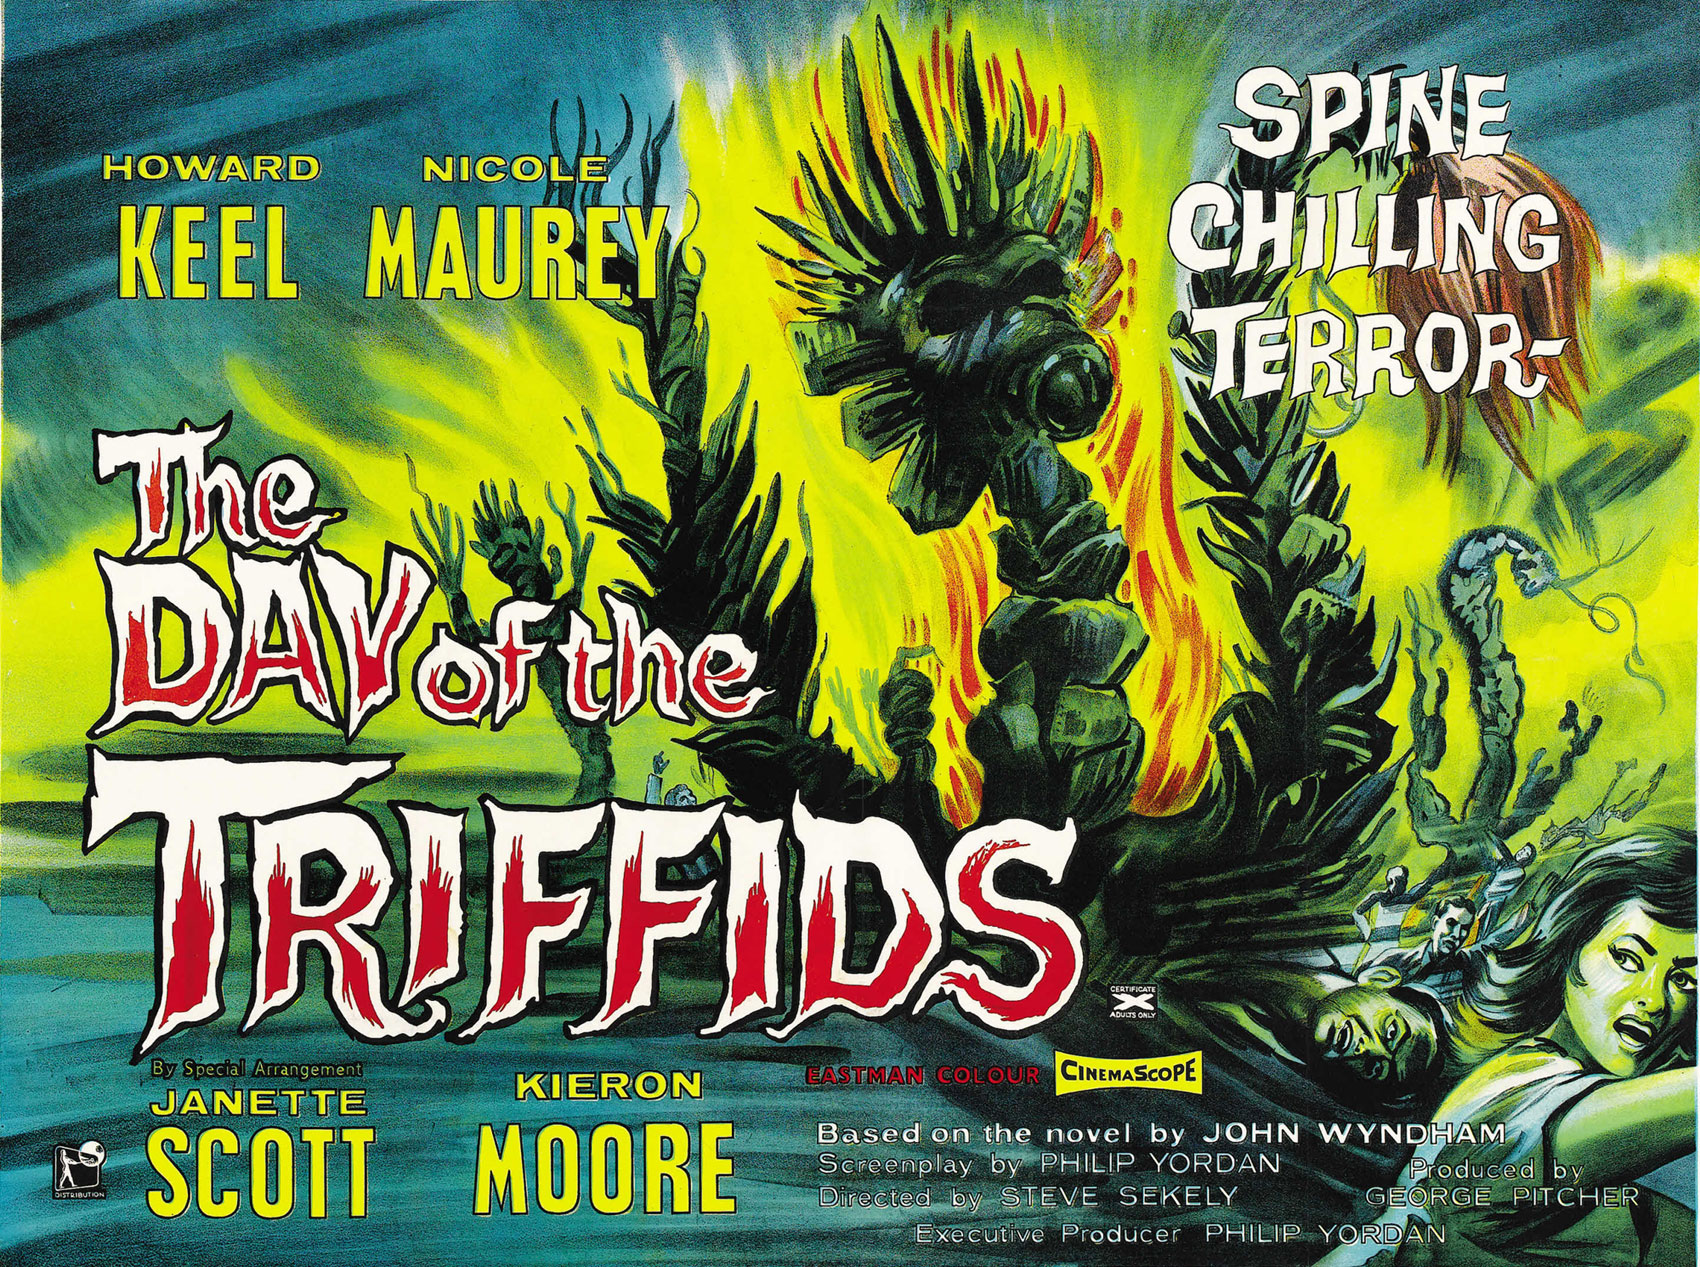 https://i0.wp.com/www.blastr.com/sites/blastr/files/day_of_triffids_poster_02.jpg